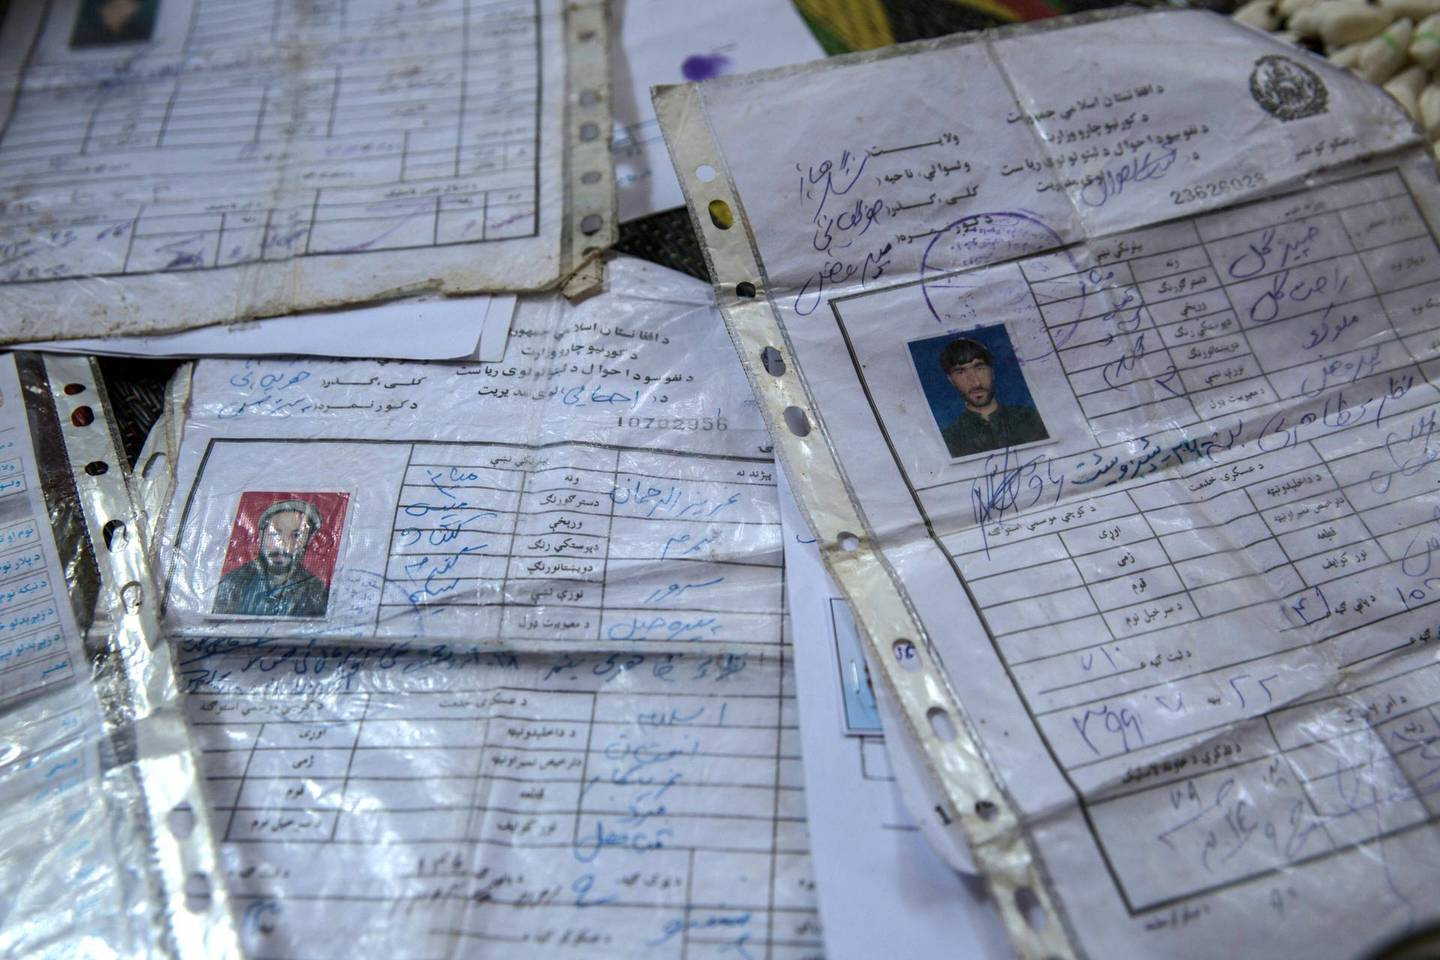 ID cards of the seven peple from Jawari village who were killed in a US drone strike lie on the floor of Rahat Gul's house.